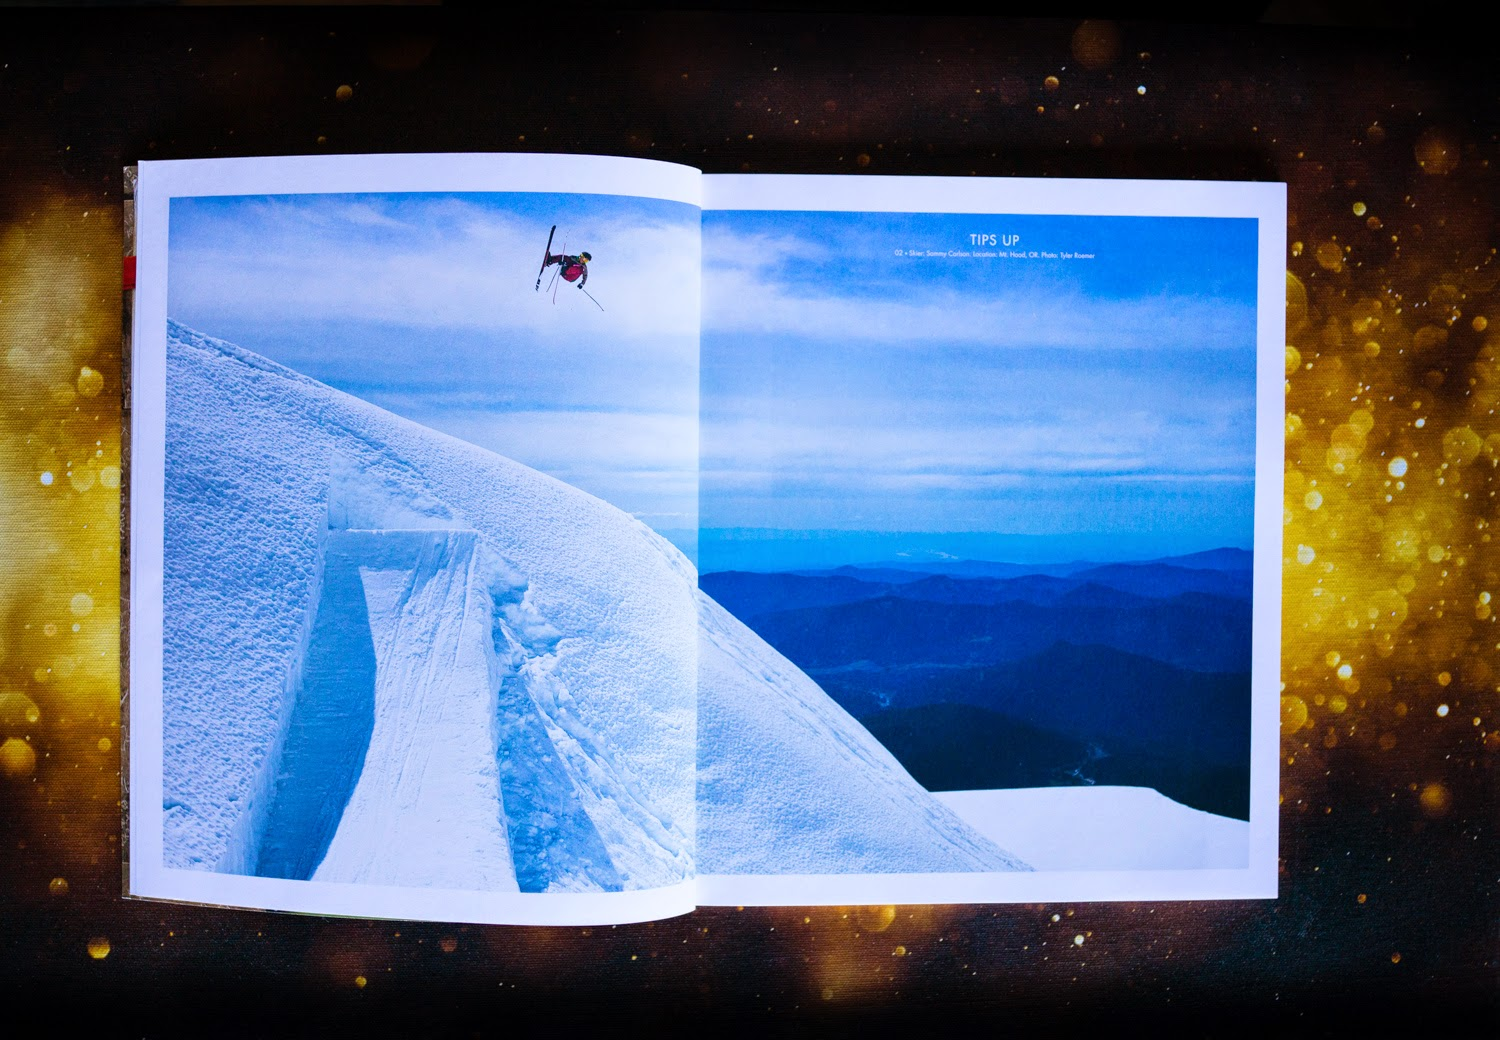 Sammy Carlson blasts on his skis in the side country of mount hood, Oregon for the Tips Up section of Ski Journal.